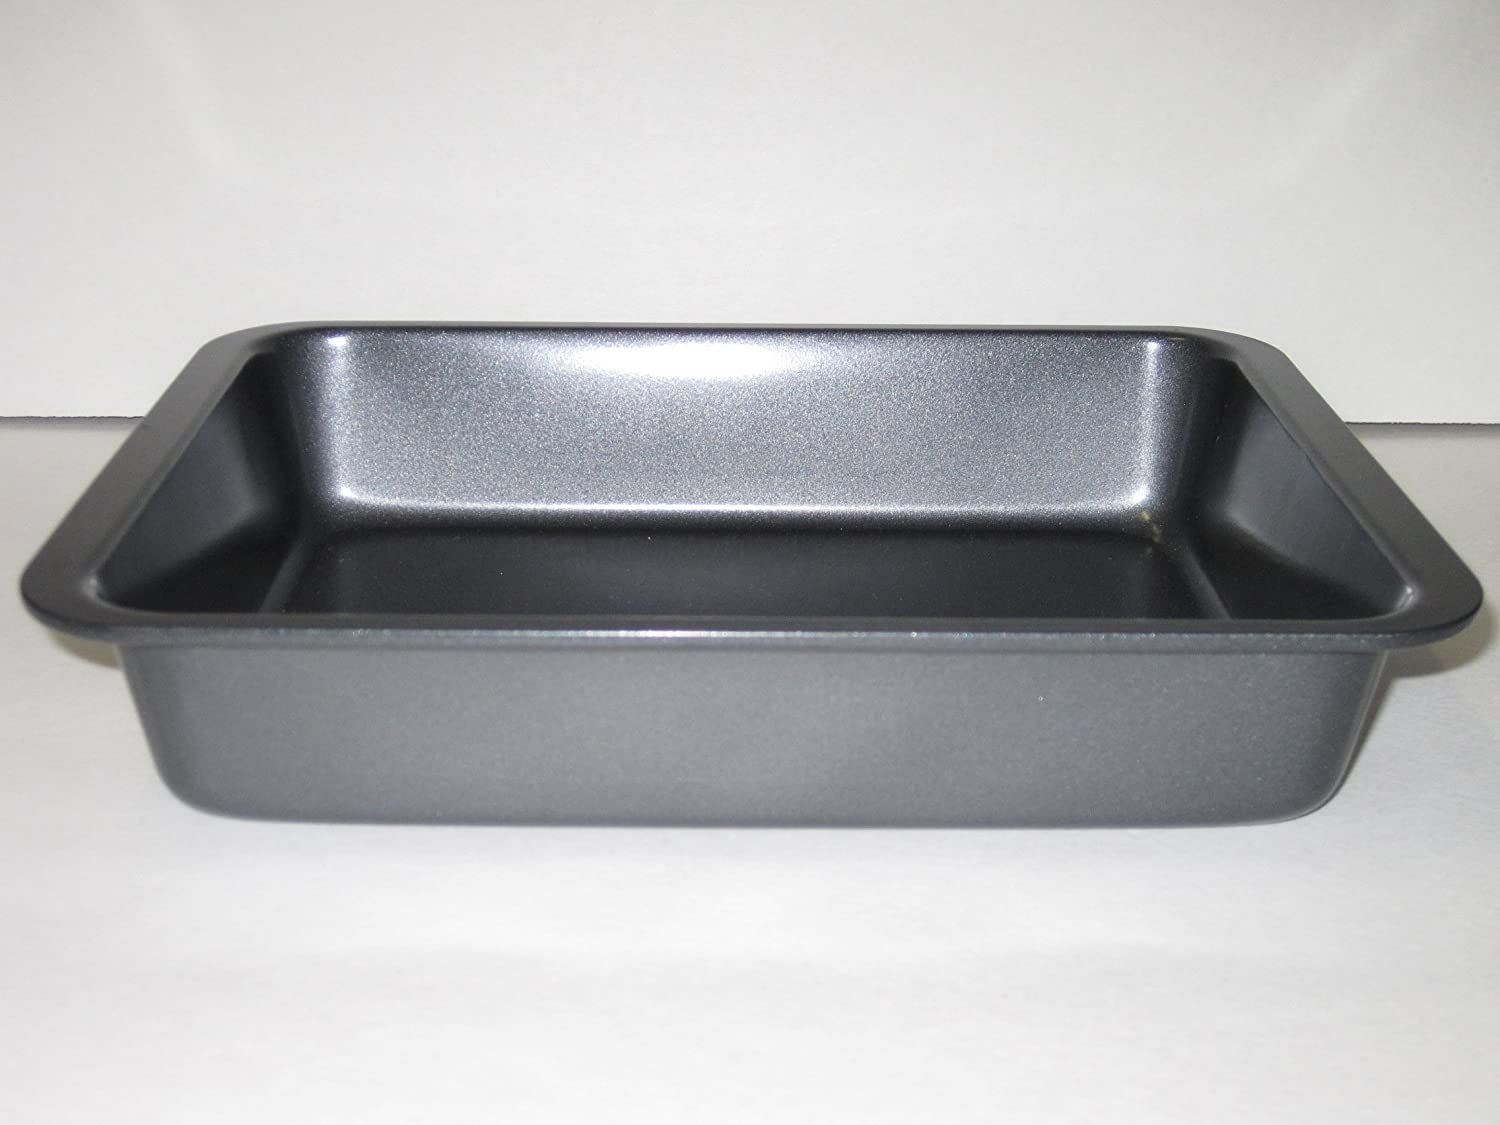 Toaster Oven Roaster Pan 9 1/2 x 7 1/16 x 1 1/2 Inches Outside Measurements